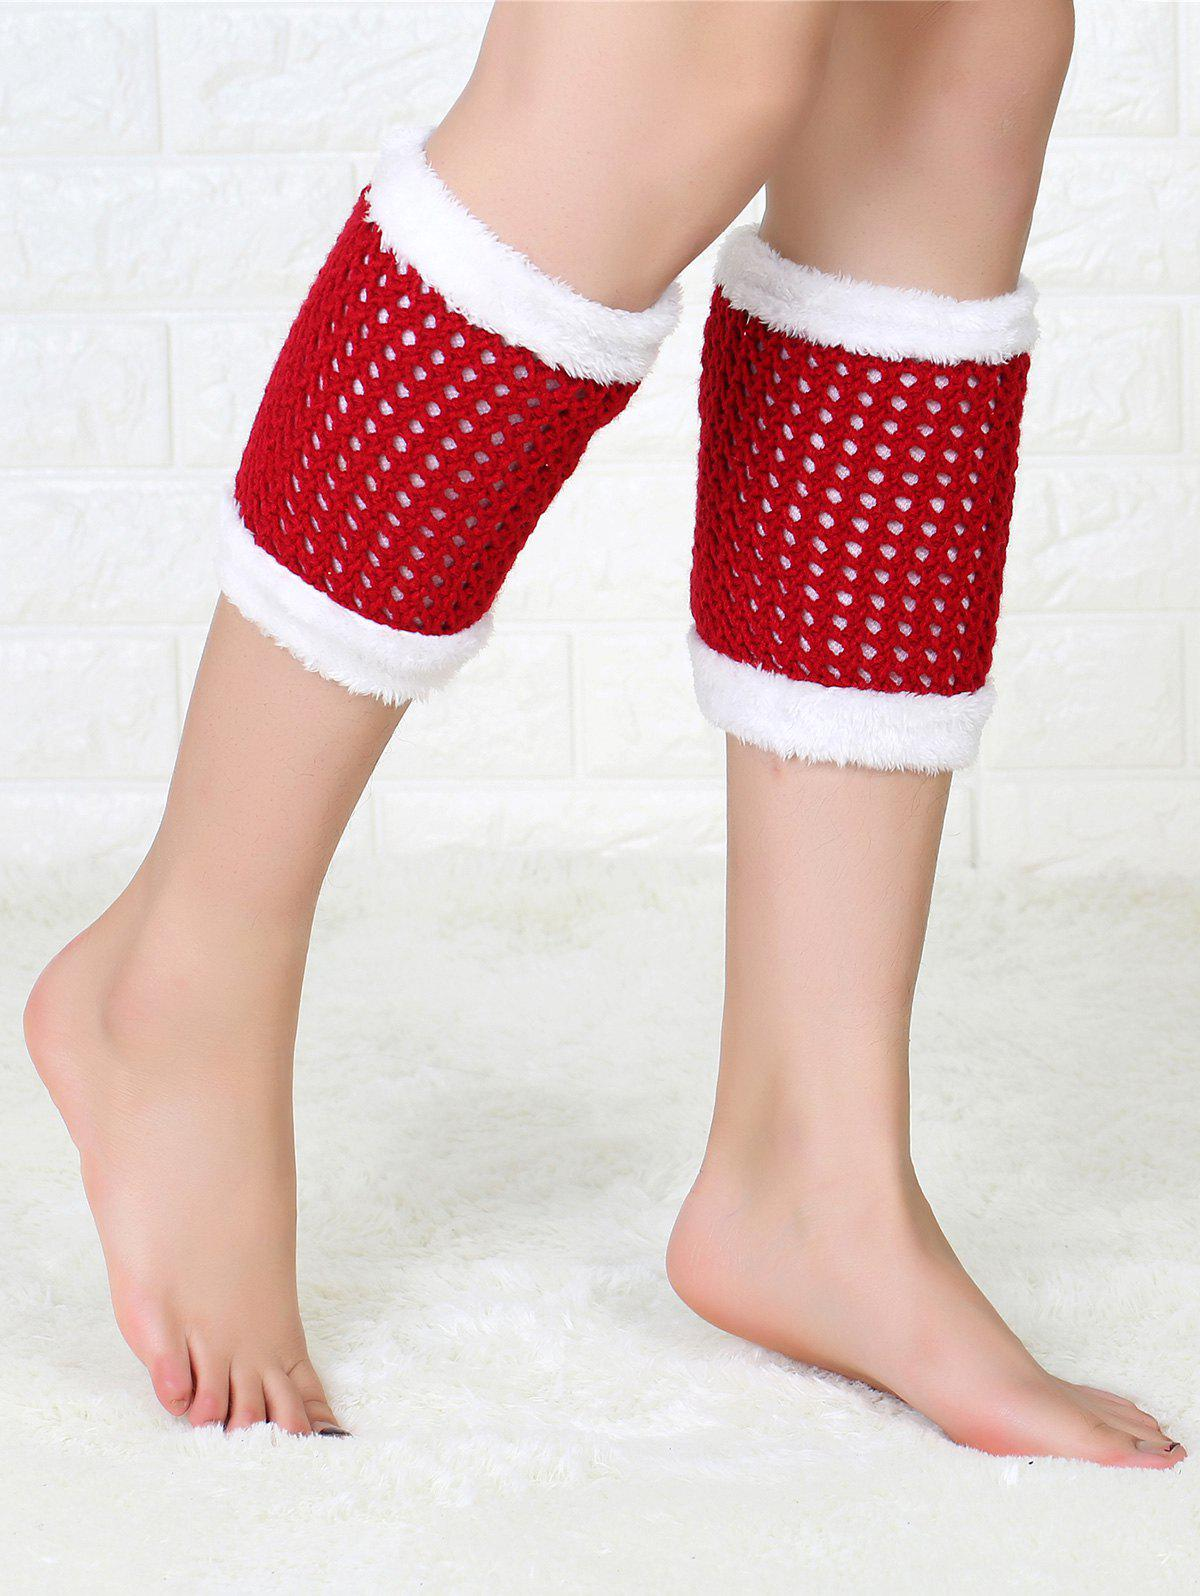 Hollow Out Crochet Christmas Fluffy Boot CuffsACCESSORIES<br><br>Color: RED; Type: Leg Warmers; Group: Adult; Gender: For Women; Style: Fashion; Pattern Type: Solid; Material: Spandex; Length(CM): 20CM; Width(CM): 12CM; Weight: 0.100kg; Package Contents: 1 x Boot Cuffs(Pair);